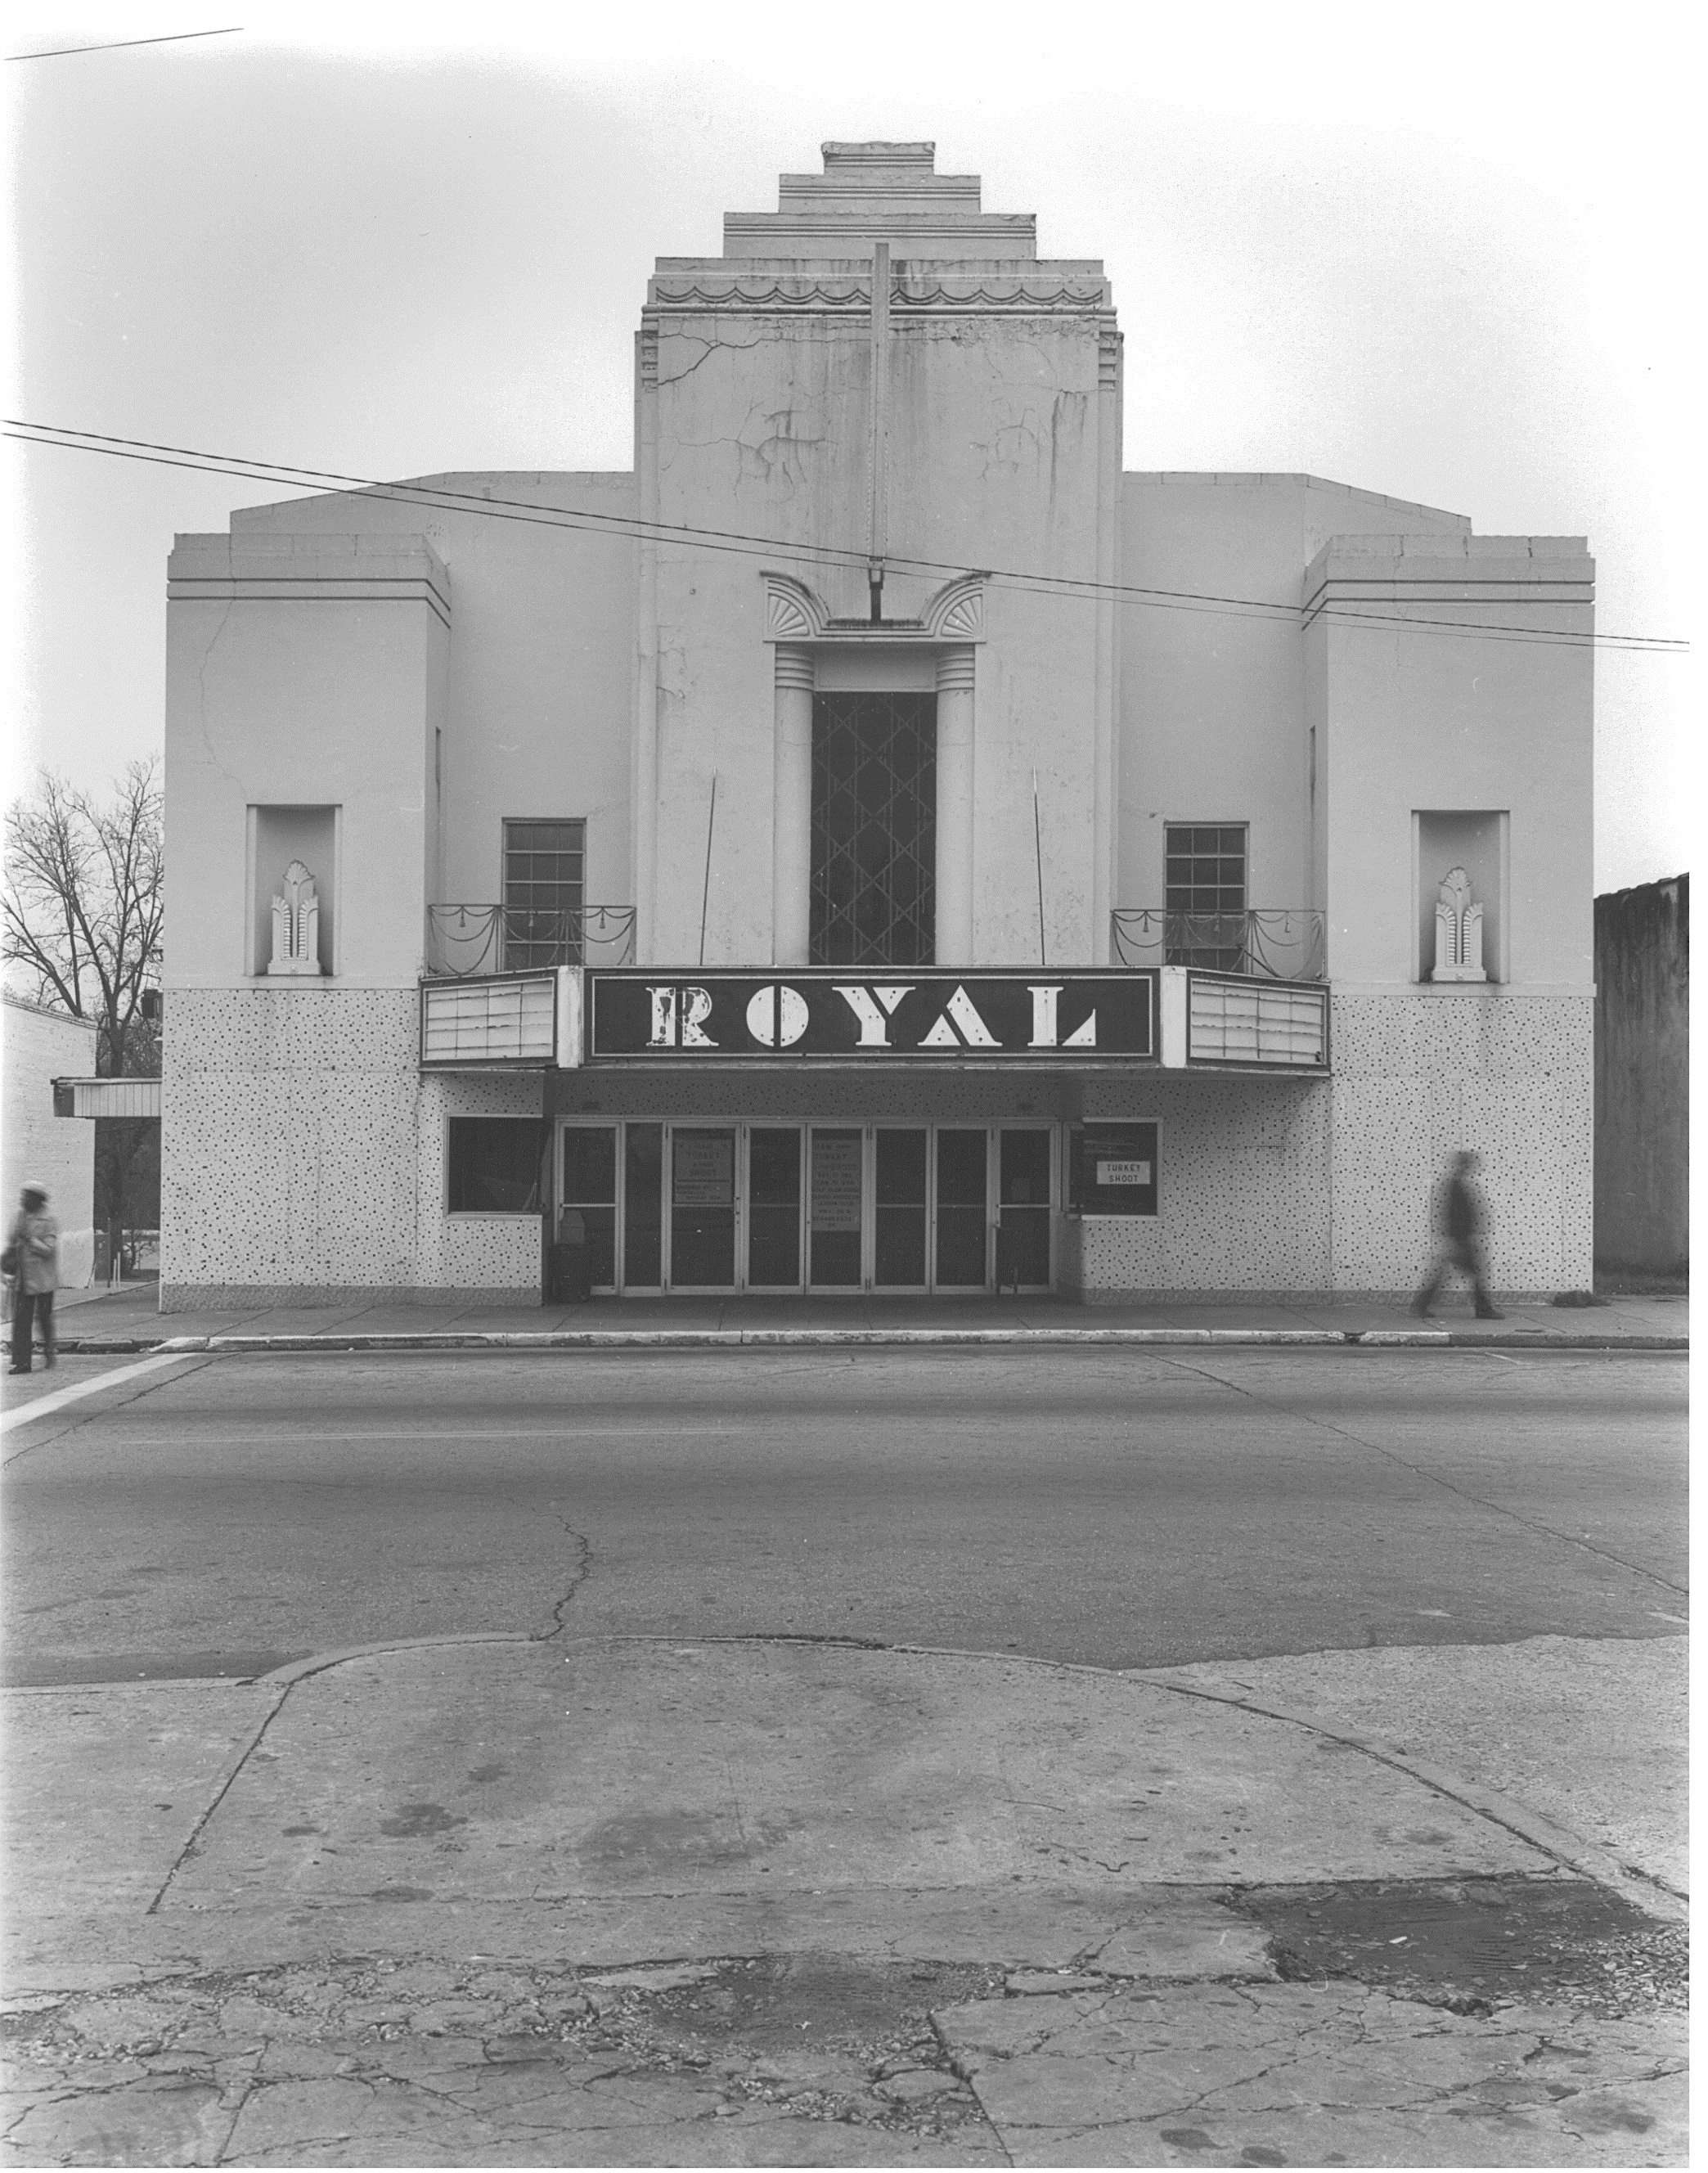 Historical image of Royal Theater Hogansville, GA provided by Troup County Archives circa 1980s